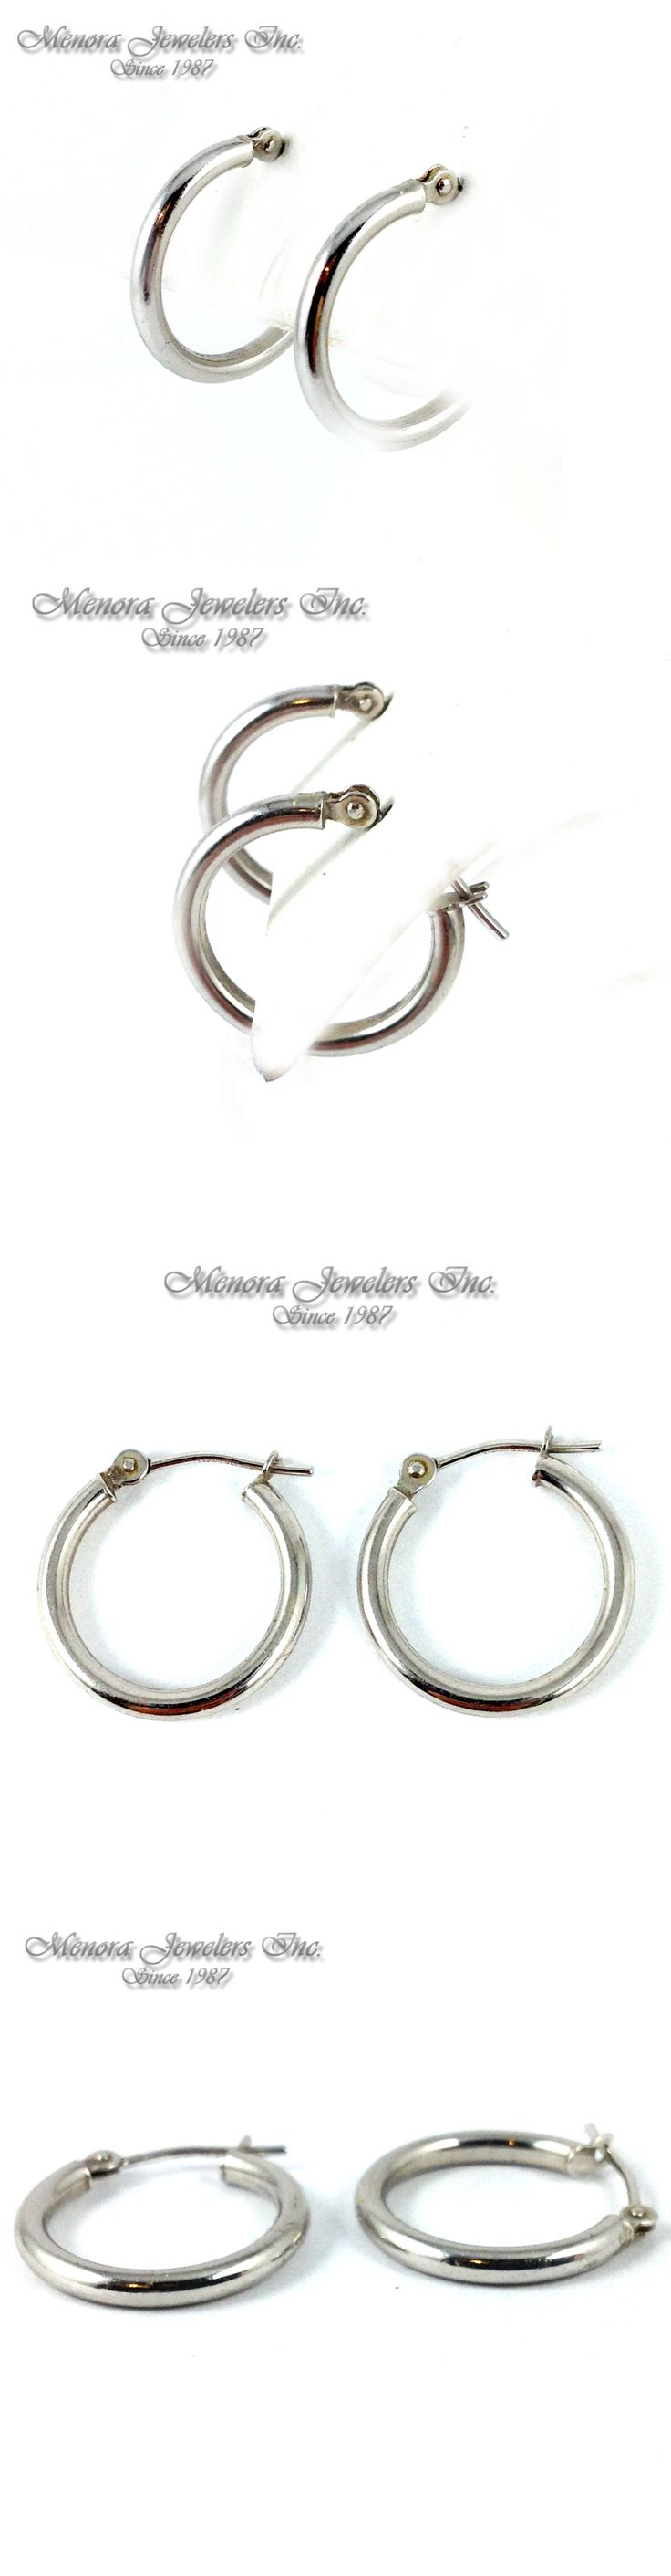 Earrings 98476: Little Girls 14K White Gold Hoop Earrings 3/8 Small And Light! Starter Earrings! BUY IT NOW ONLY: $69.0